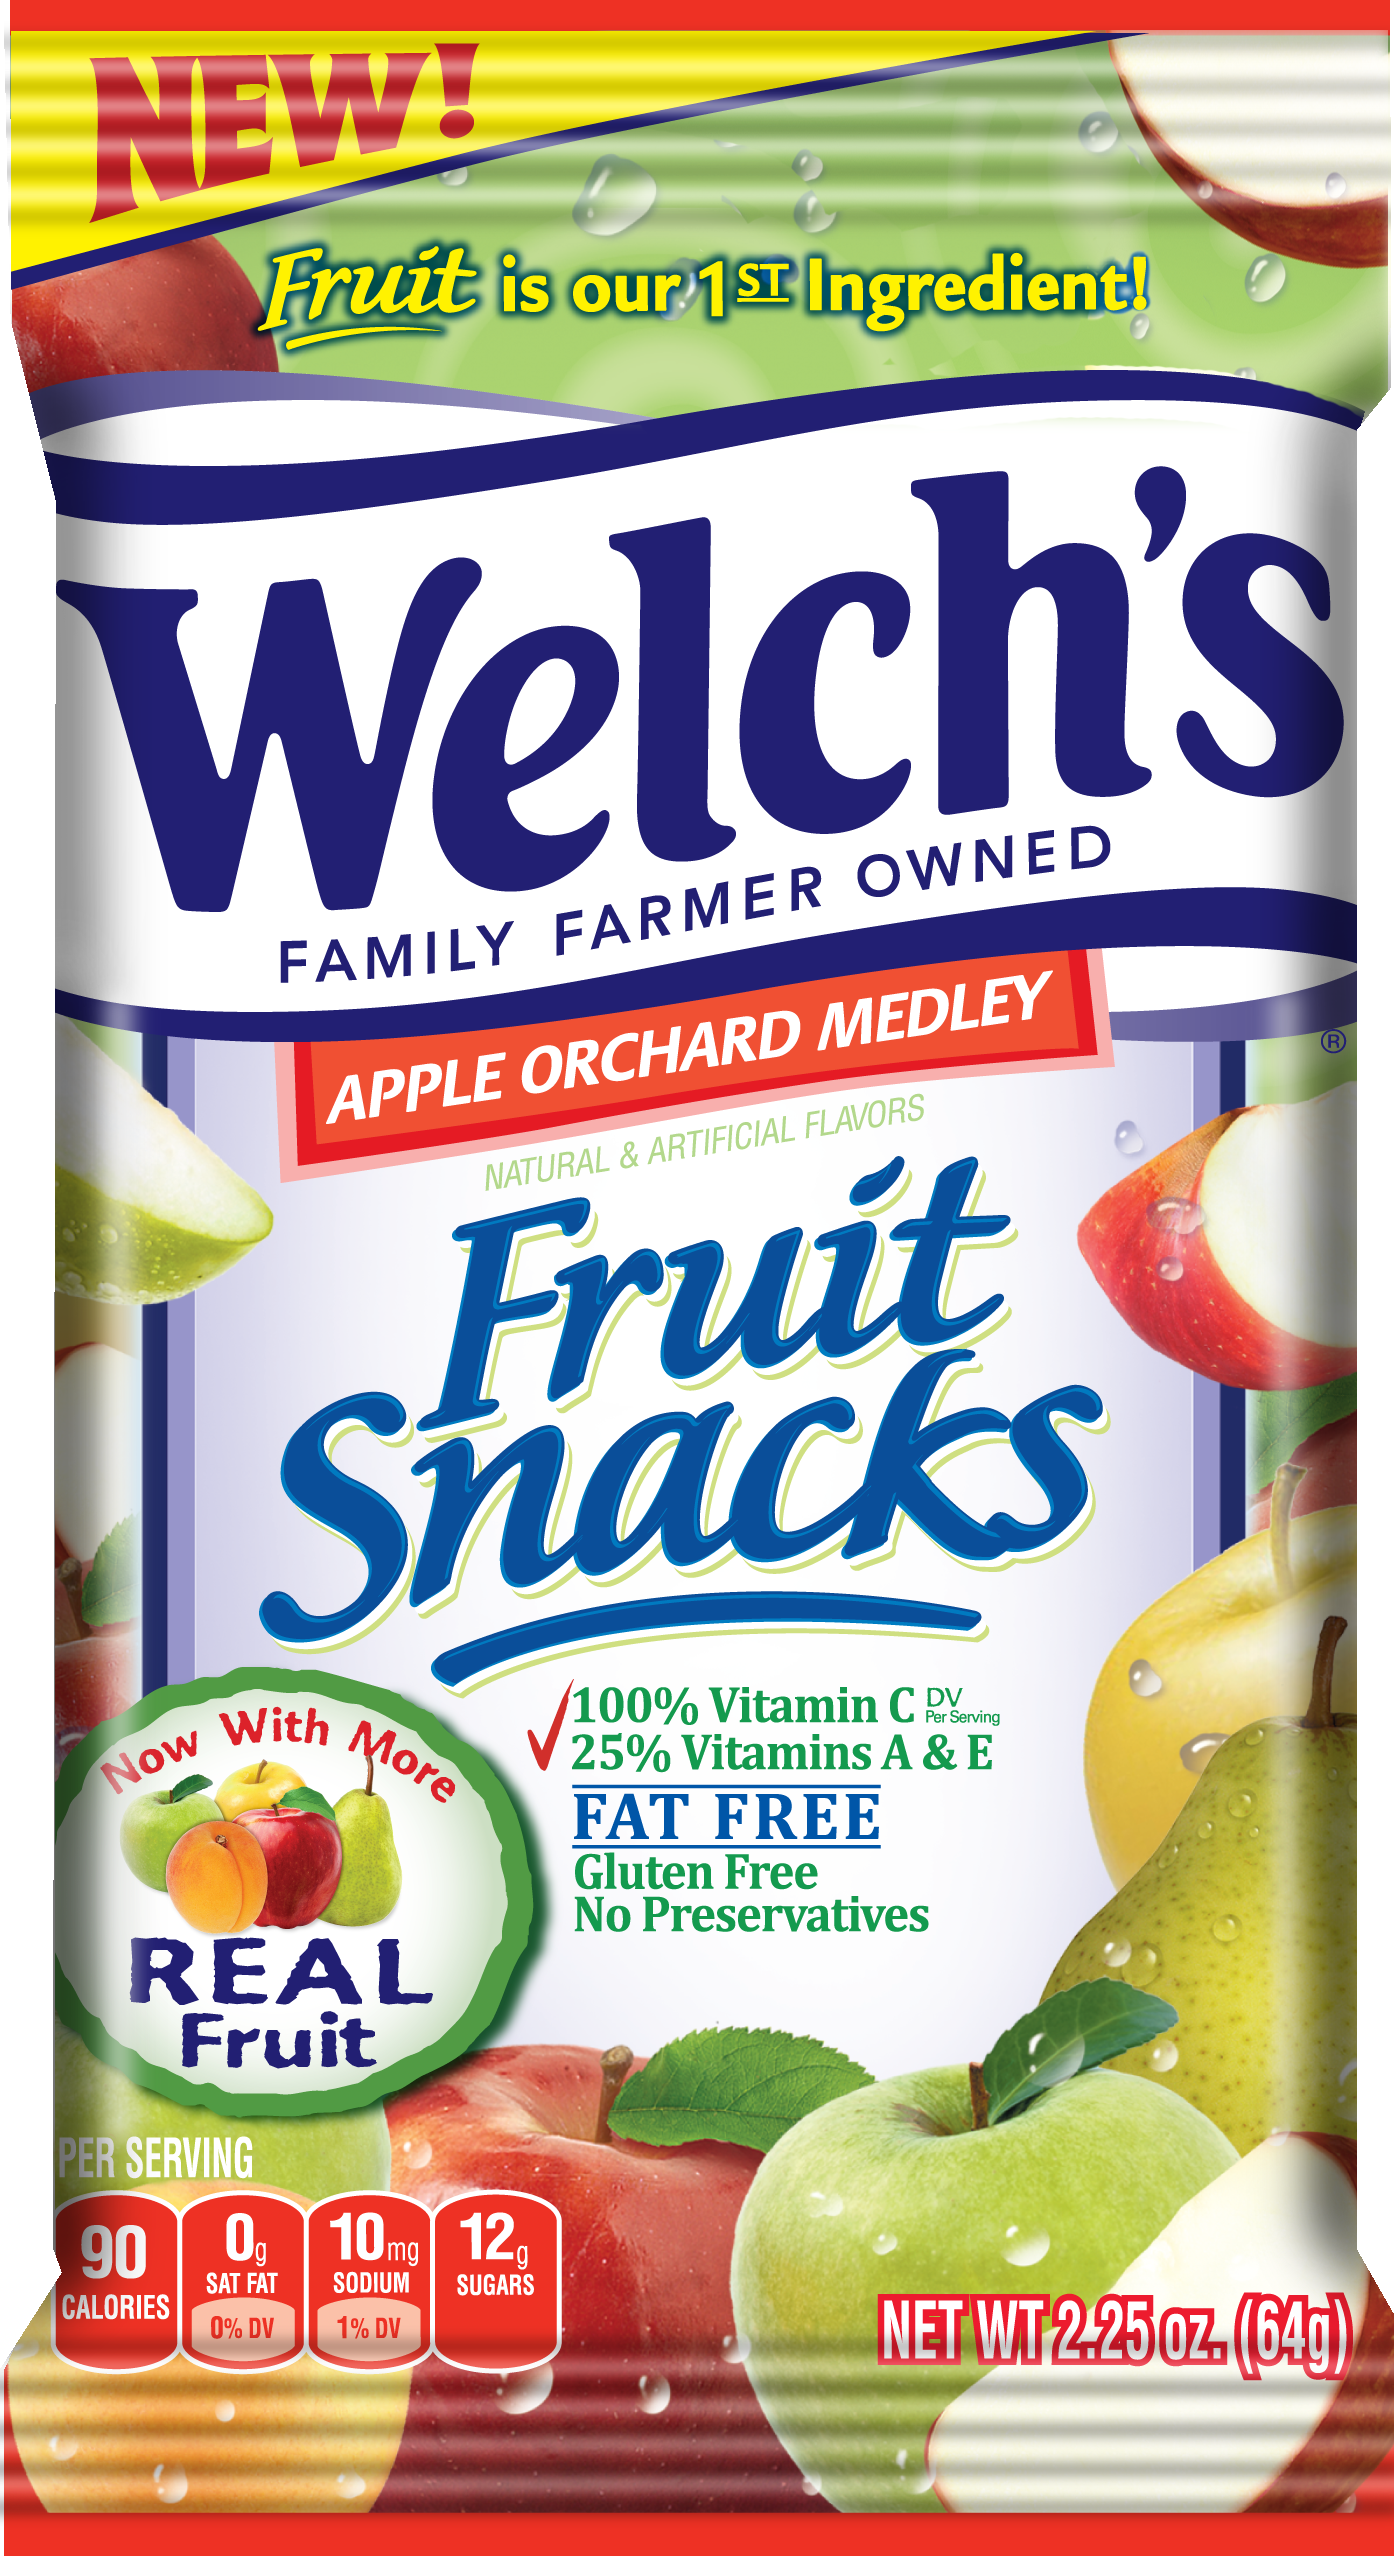 Welch S Fruit Snacks Come In 10 Mouthwatering Varieties And A Range Of Package Options To Fit Your Needs You Fruit Snacks Welches Fruit Snacks Yogurt Snacks